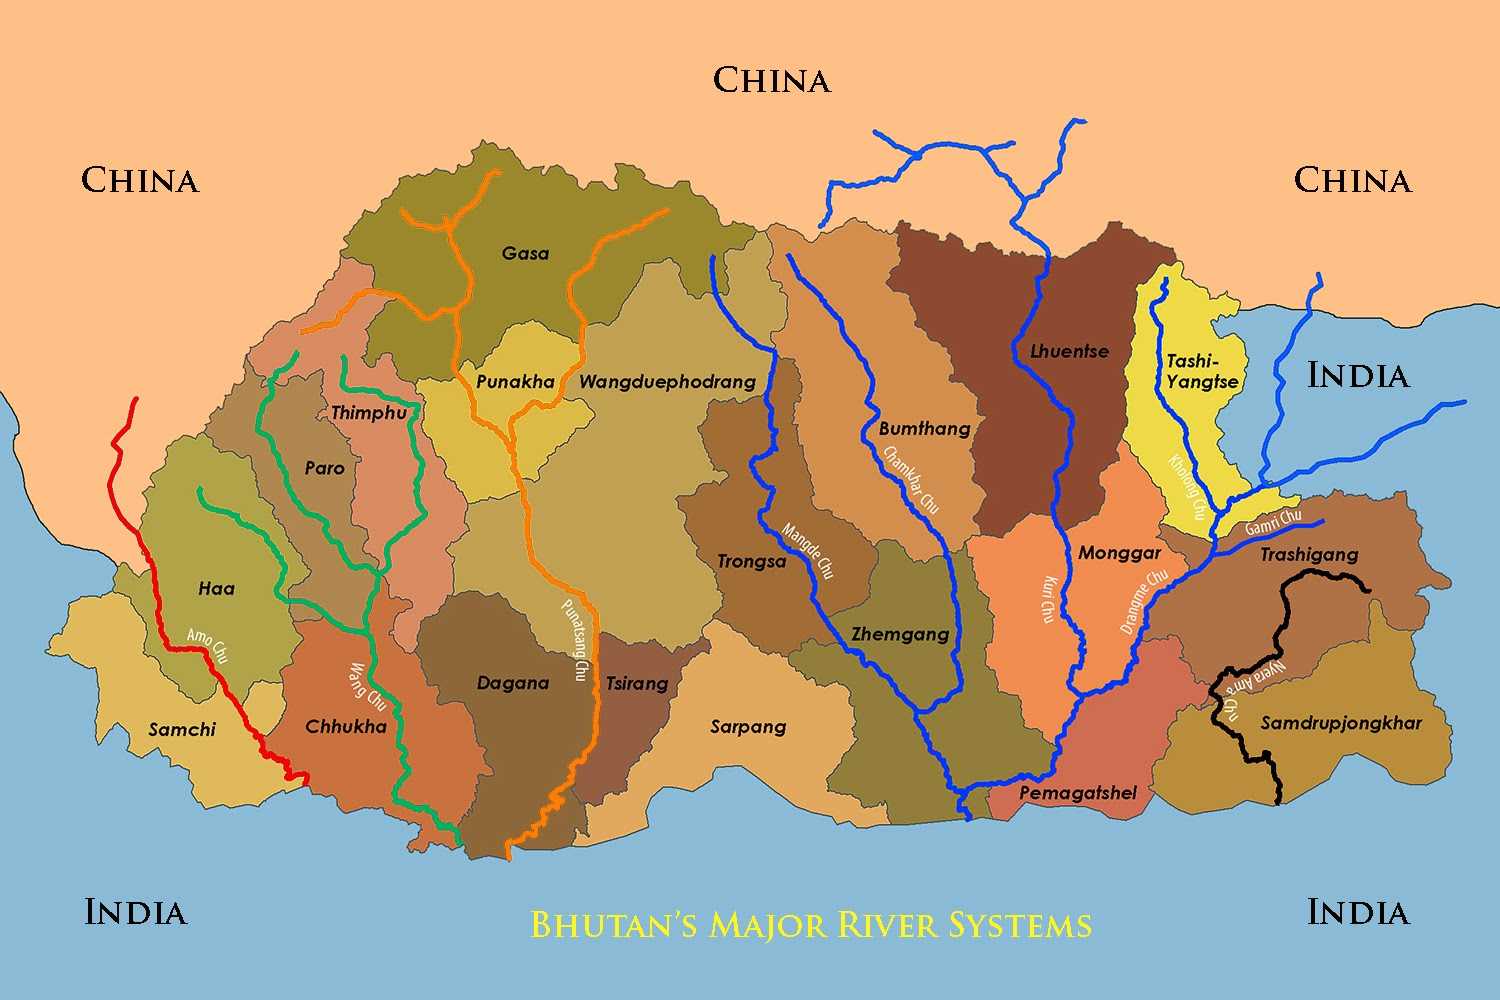 rivers in bhutan map - bhutan land of the thunder dragon